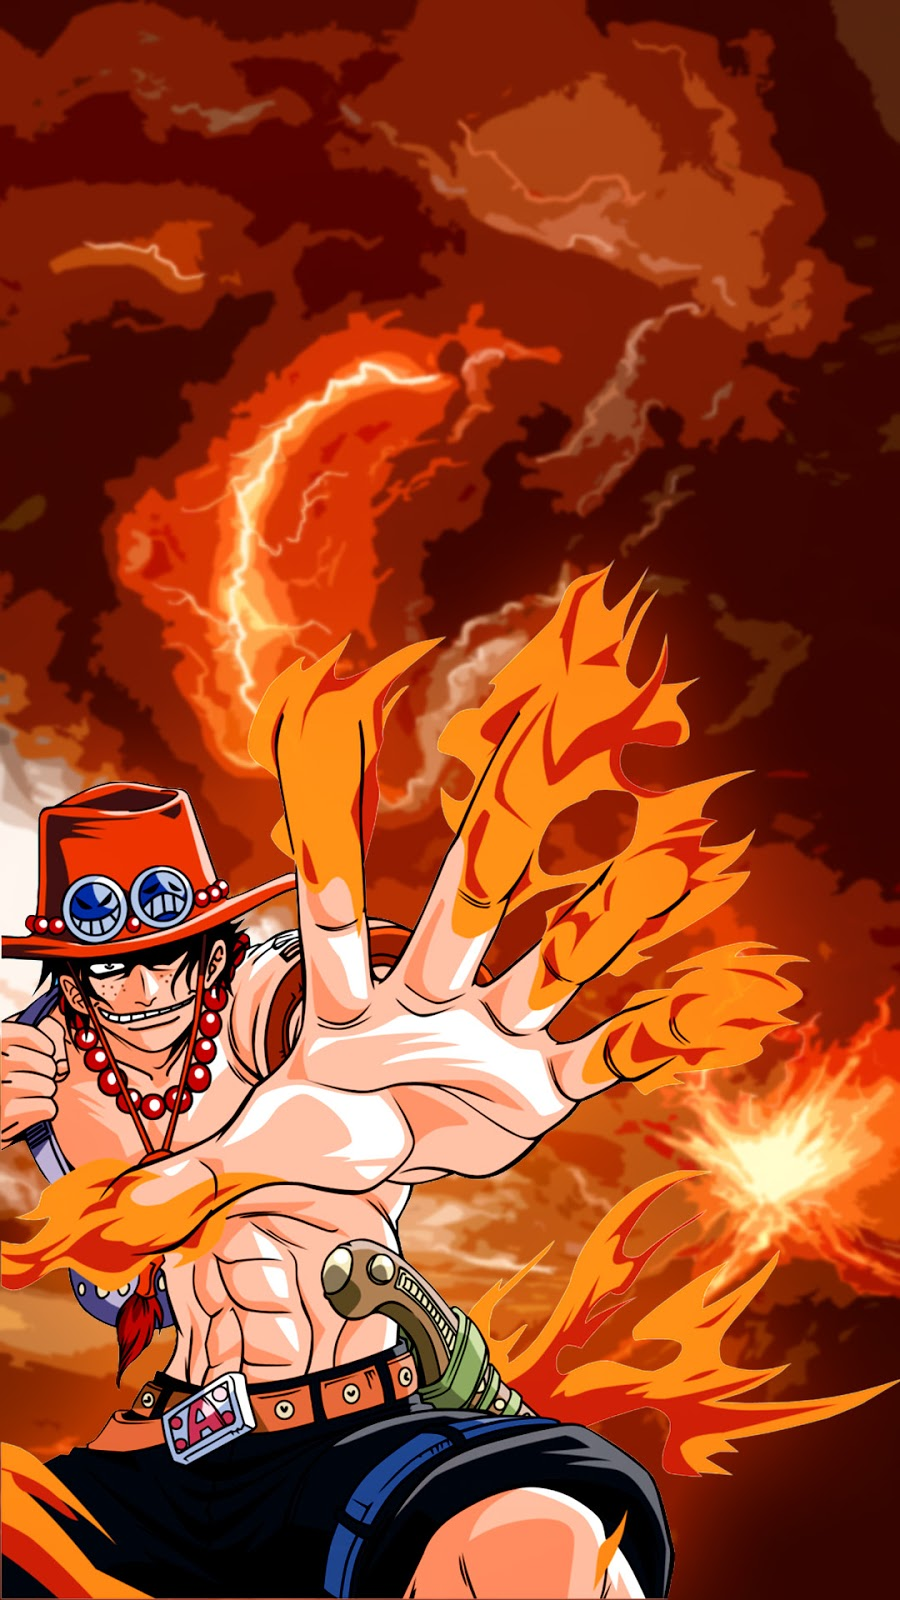 Download Wallpaper One Piece For Android Ace One Piece Hd 900x1600 Wallpaper Teahub Io